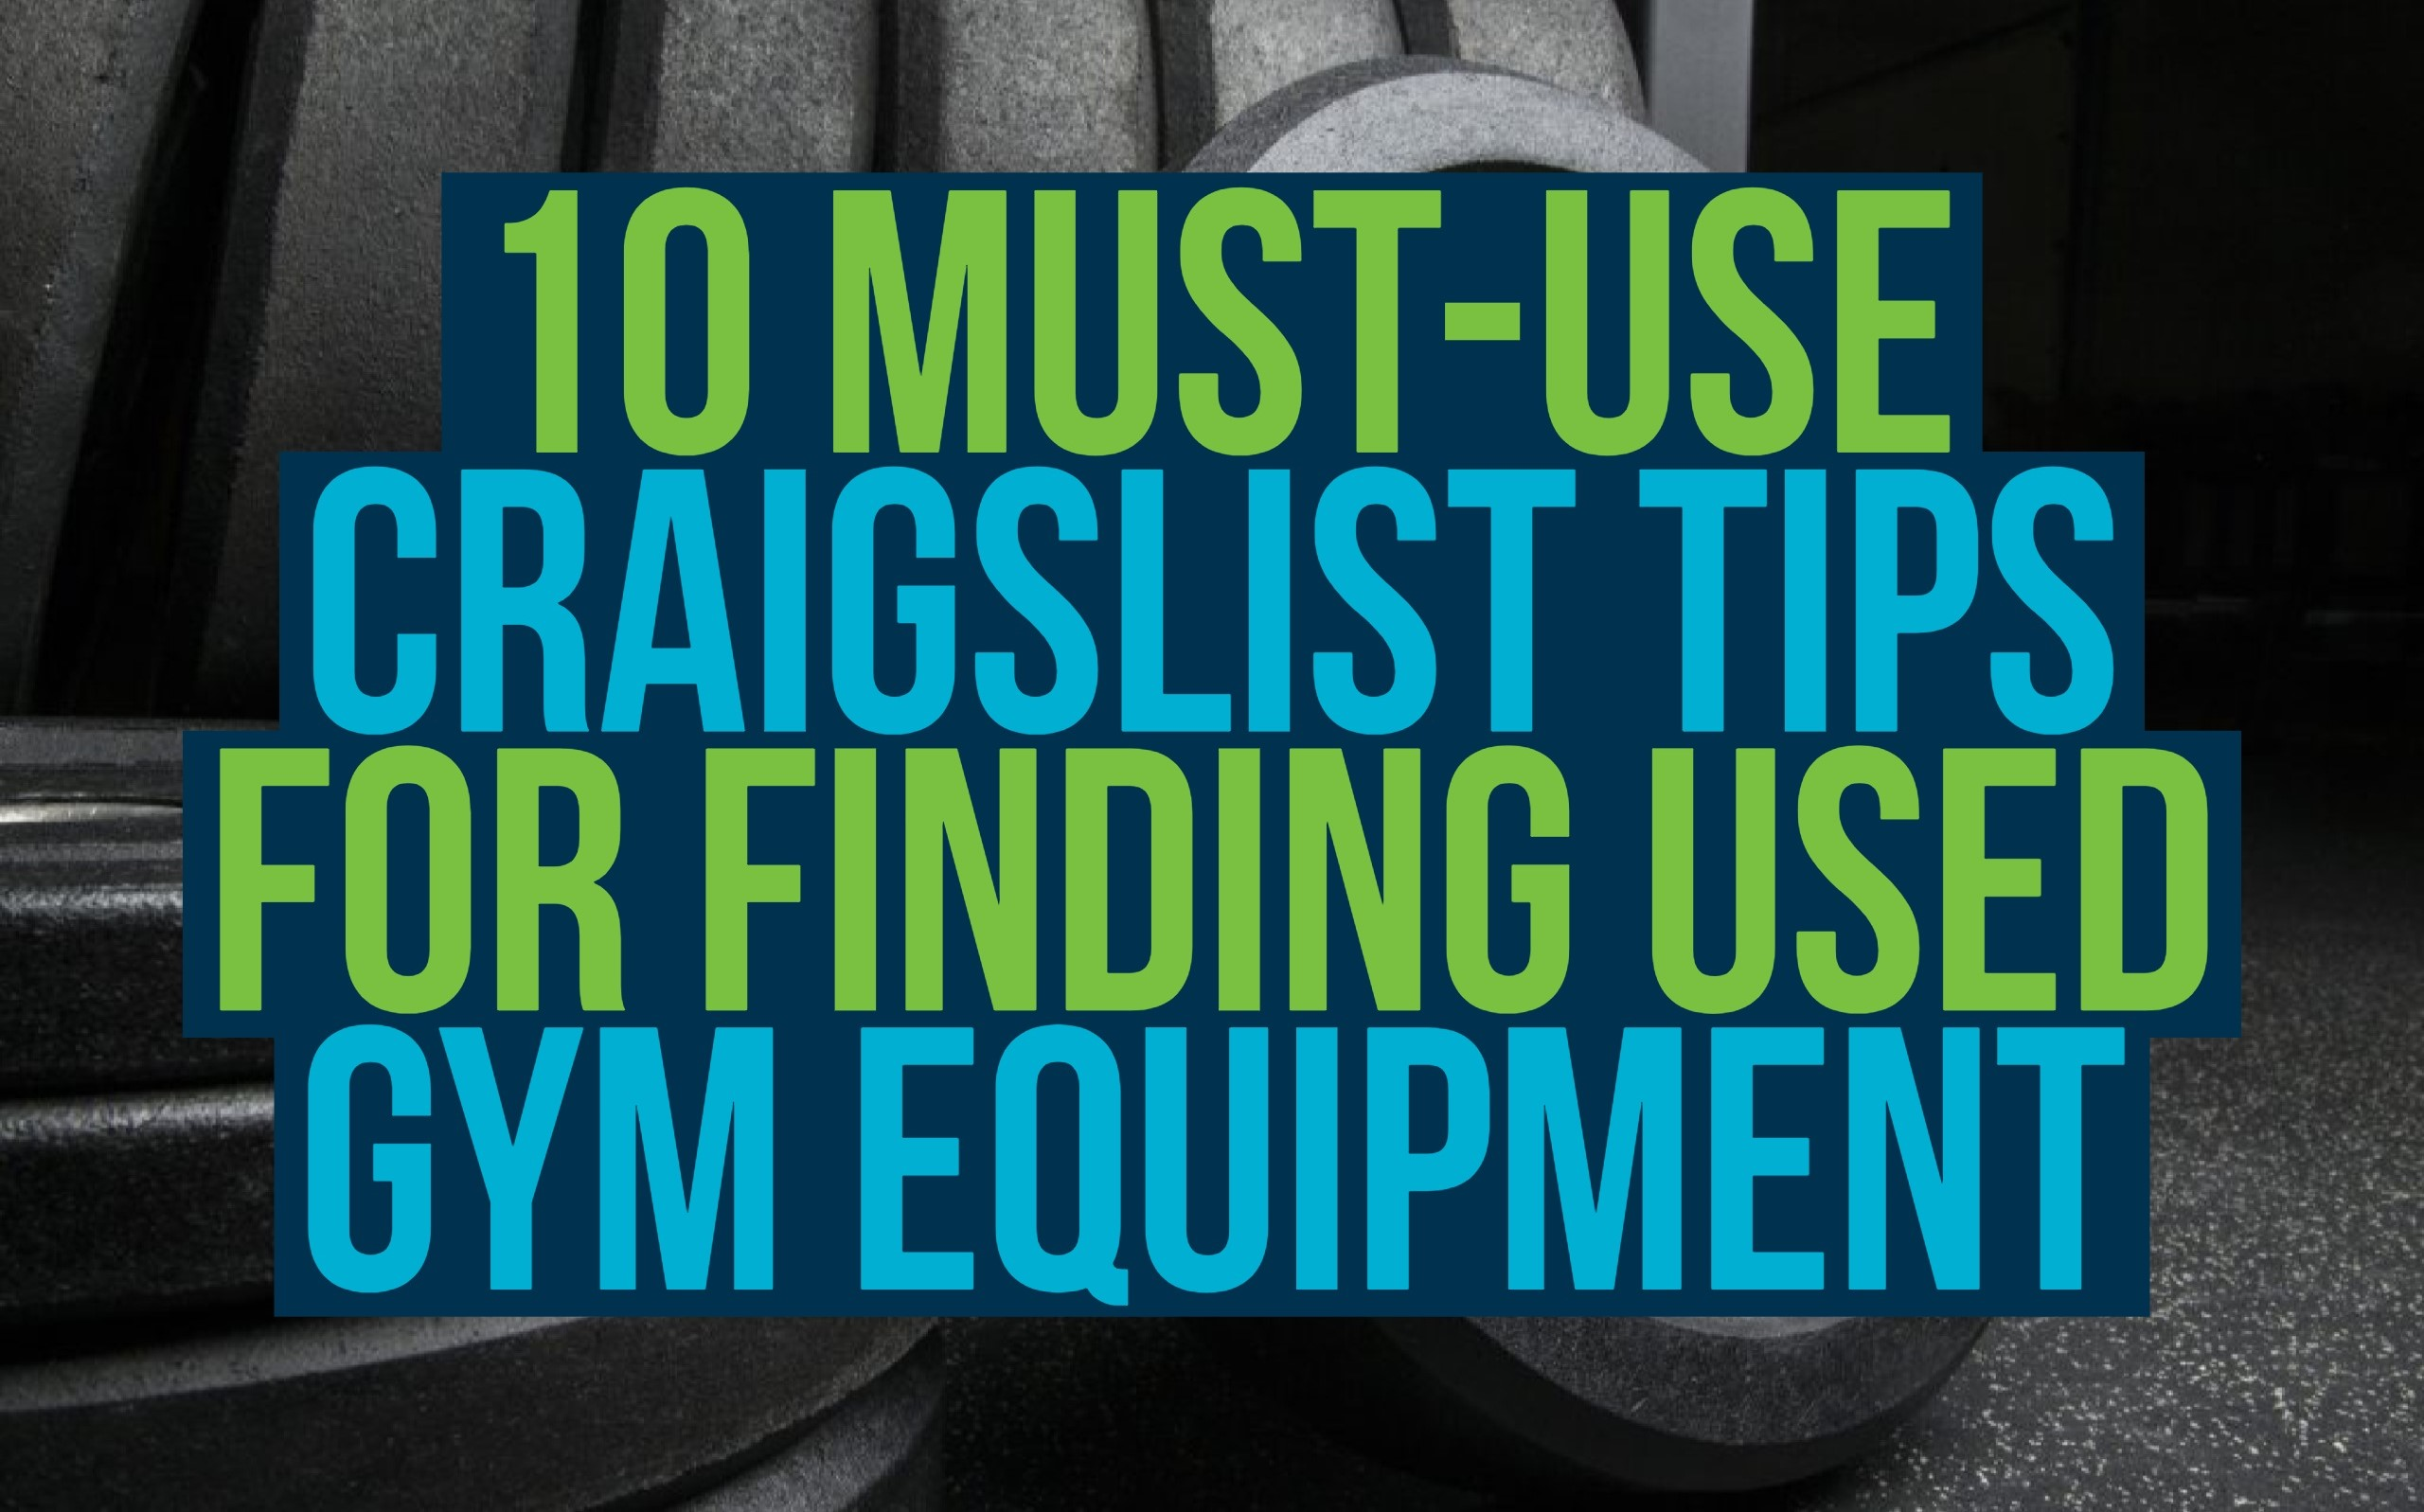 10 Must Use Craigslist Tips for Finding Used Gym Equipment Garage